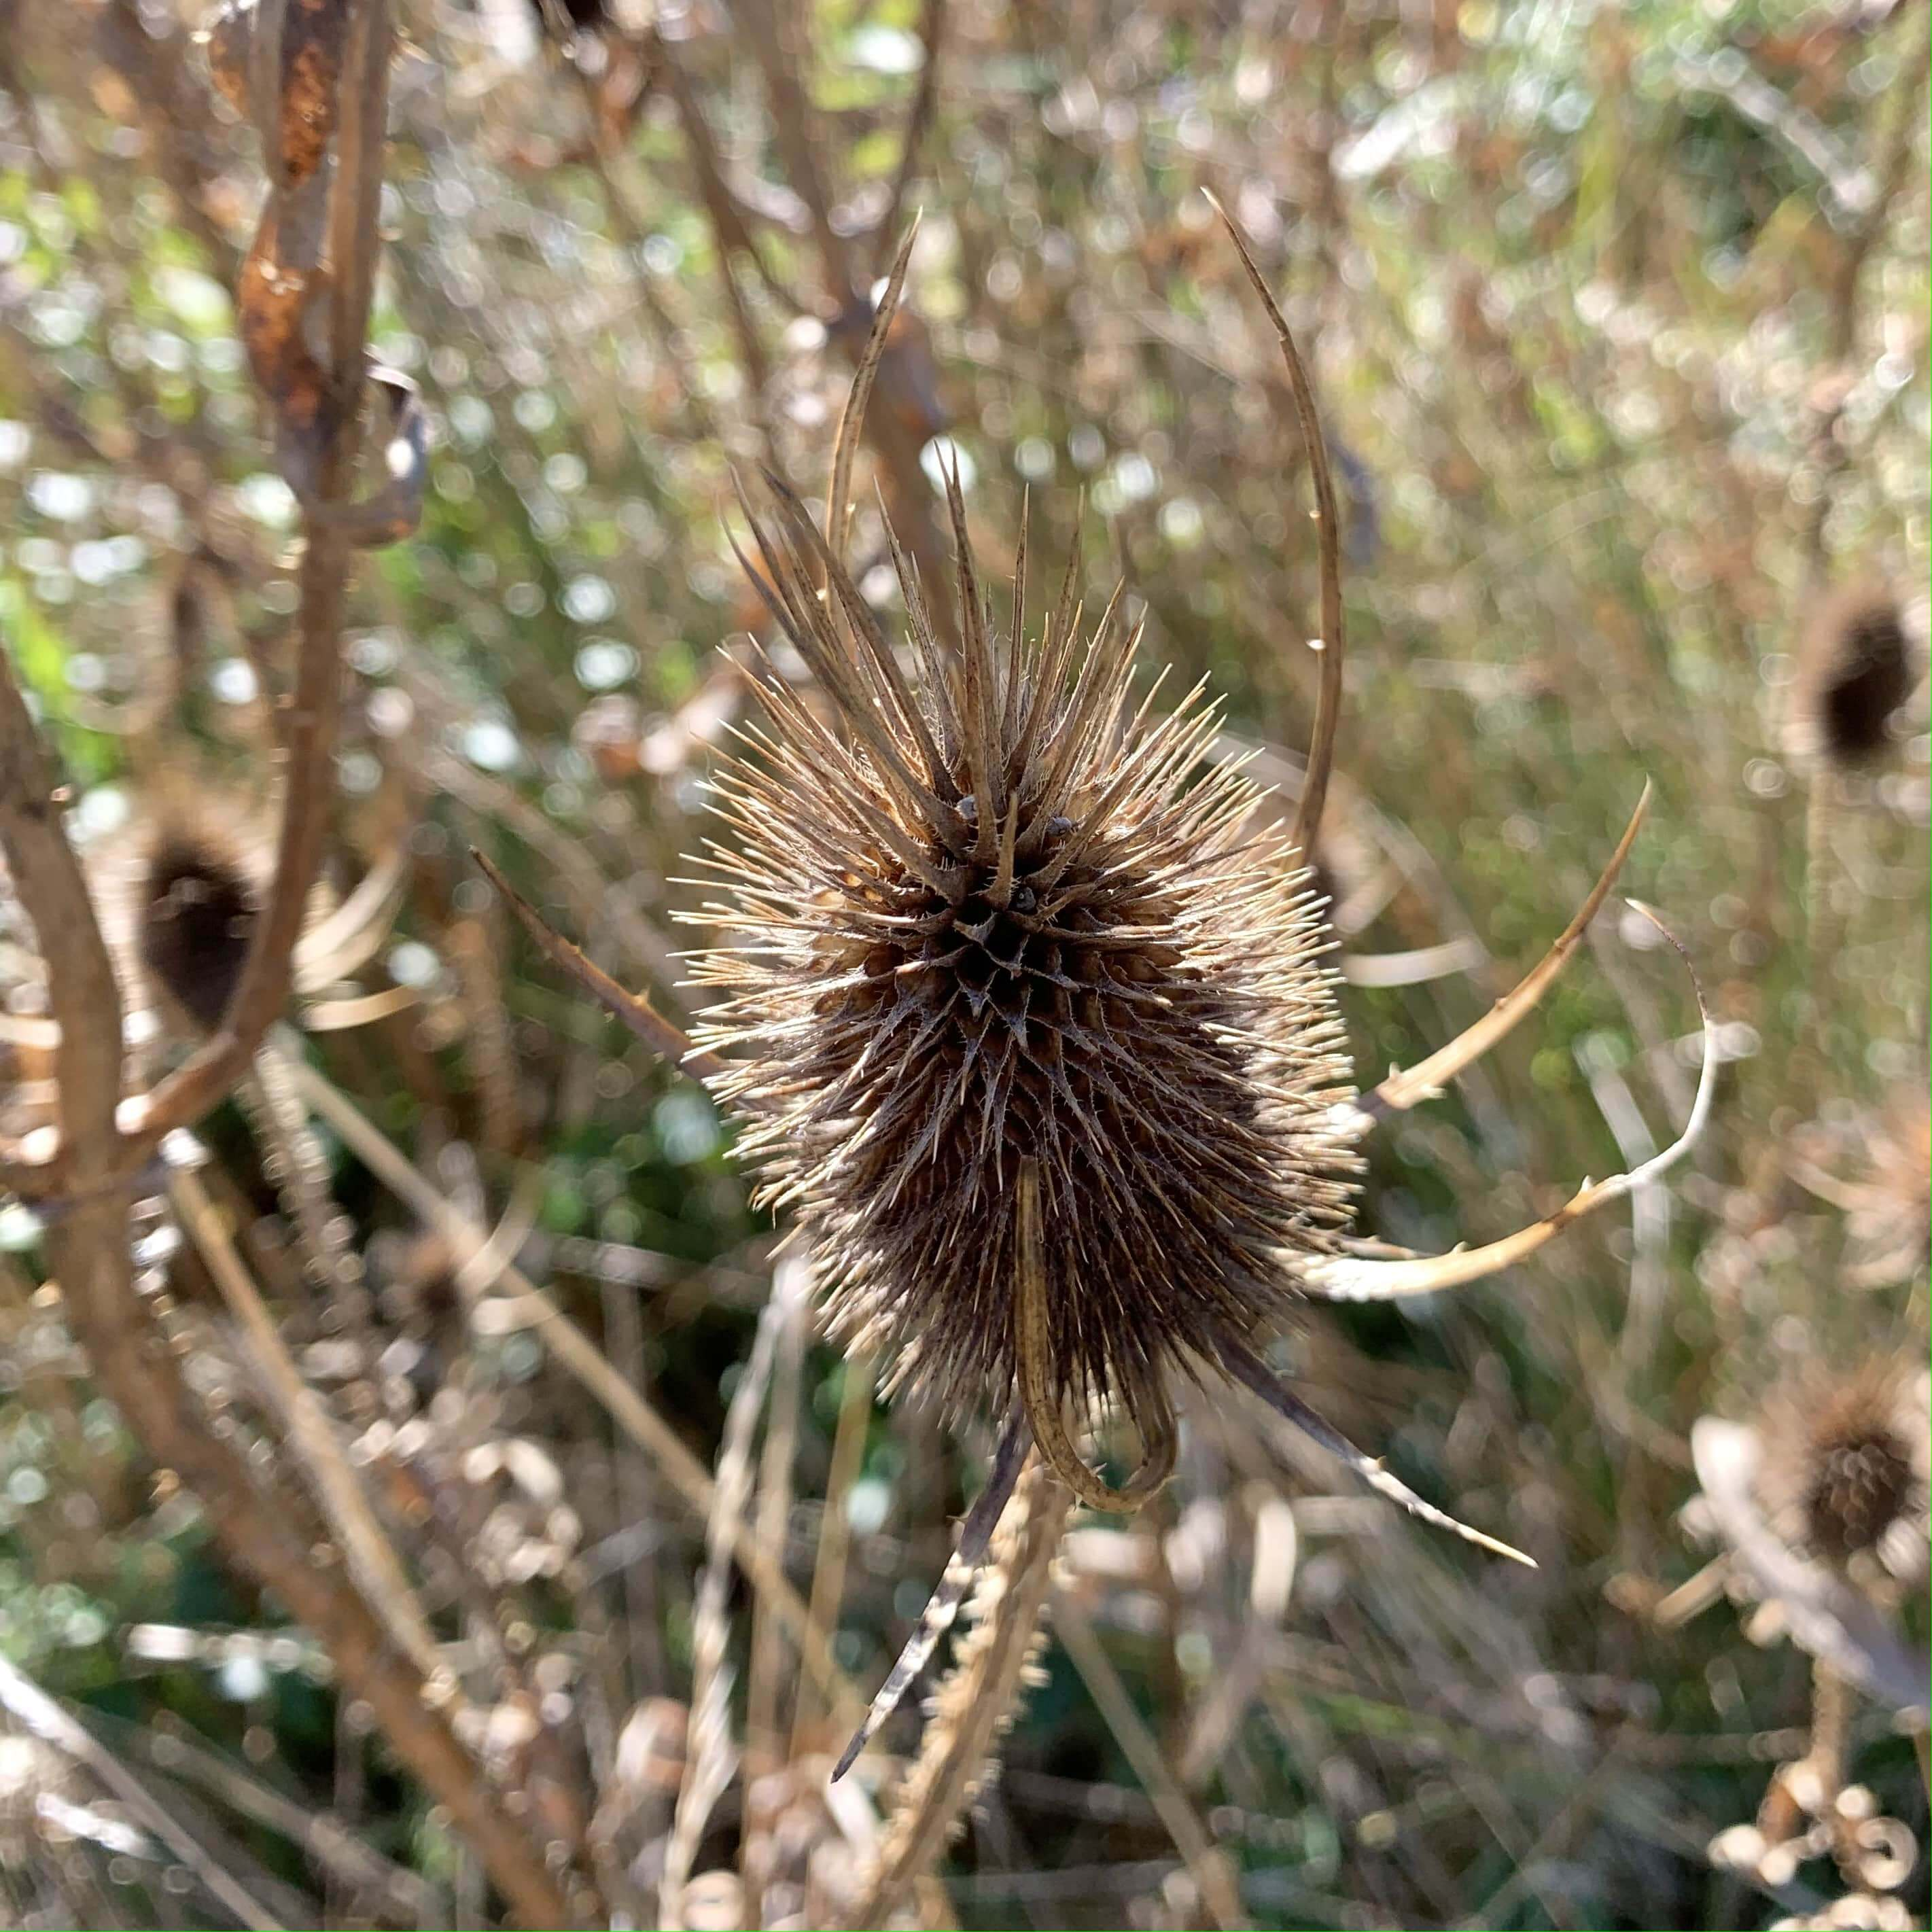 close up photo of a spiky plant